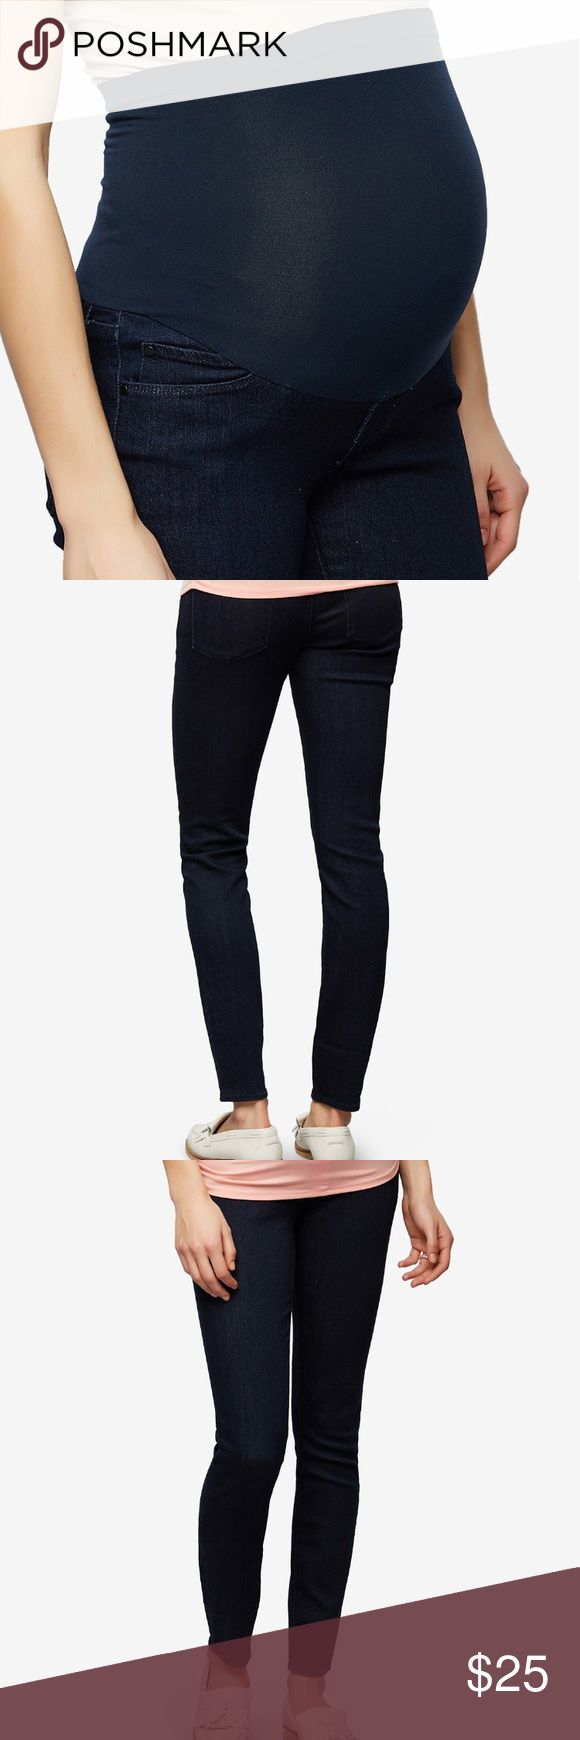 Articles of society maternity dark wash jeans Articles of society dark wash maternity jeans size 28 Articles Of Society Jeans Skinny